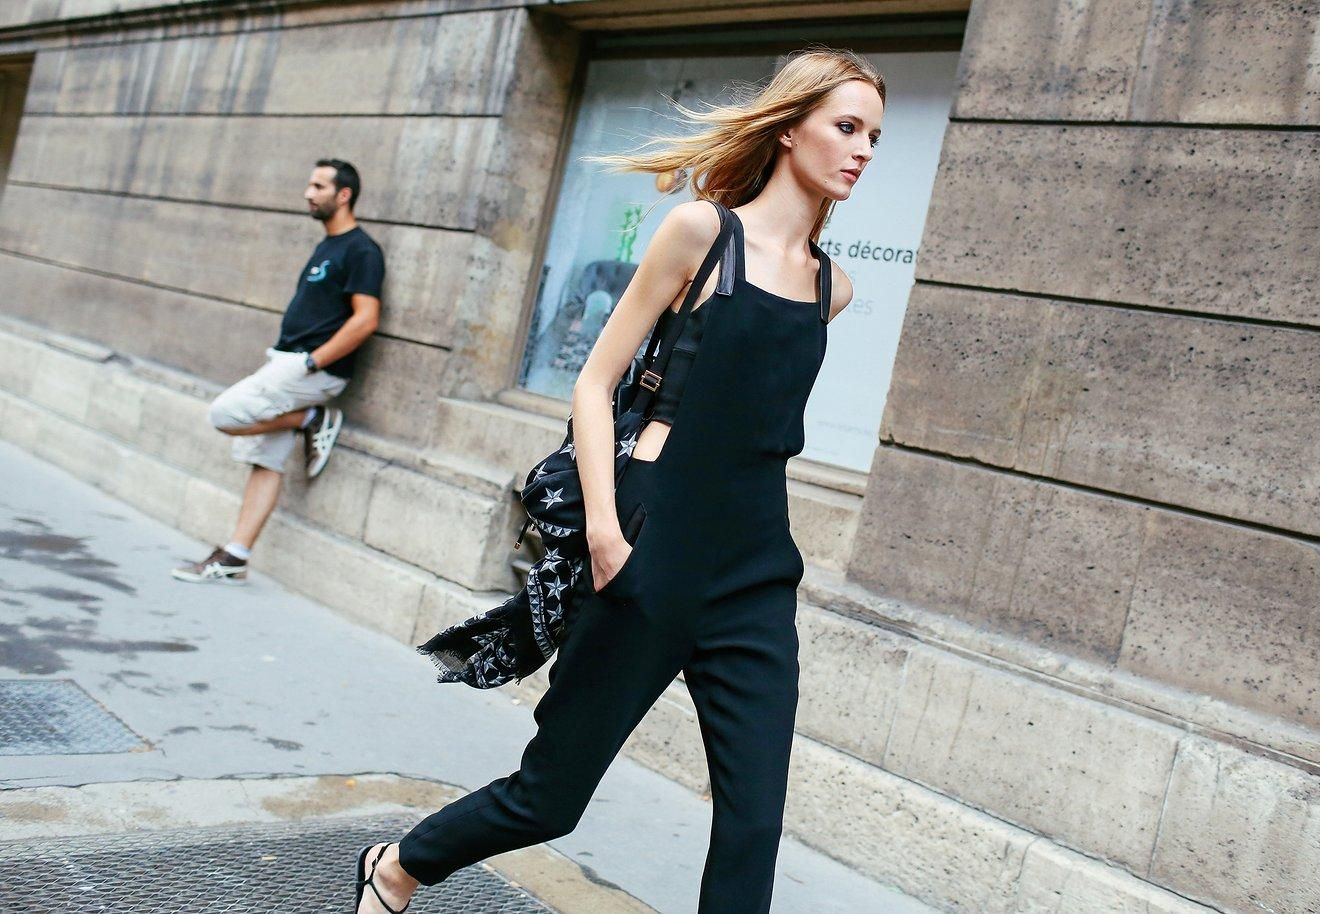 As for those bored of their bobs, take note: Swingy shoulder-length layers that grazed the collarbone suggested a fresh, feminine new length that's entirely attainable by fall